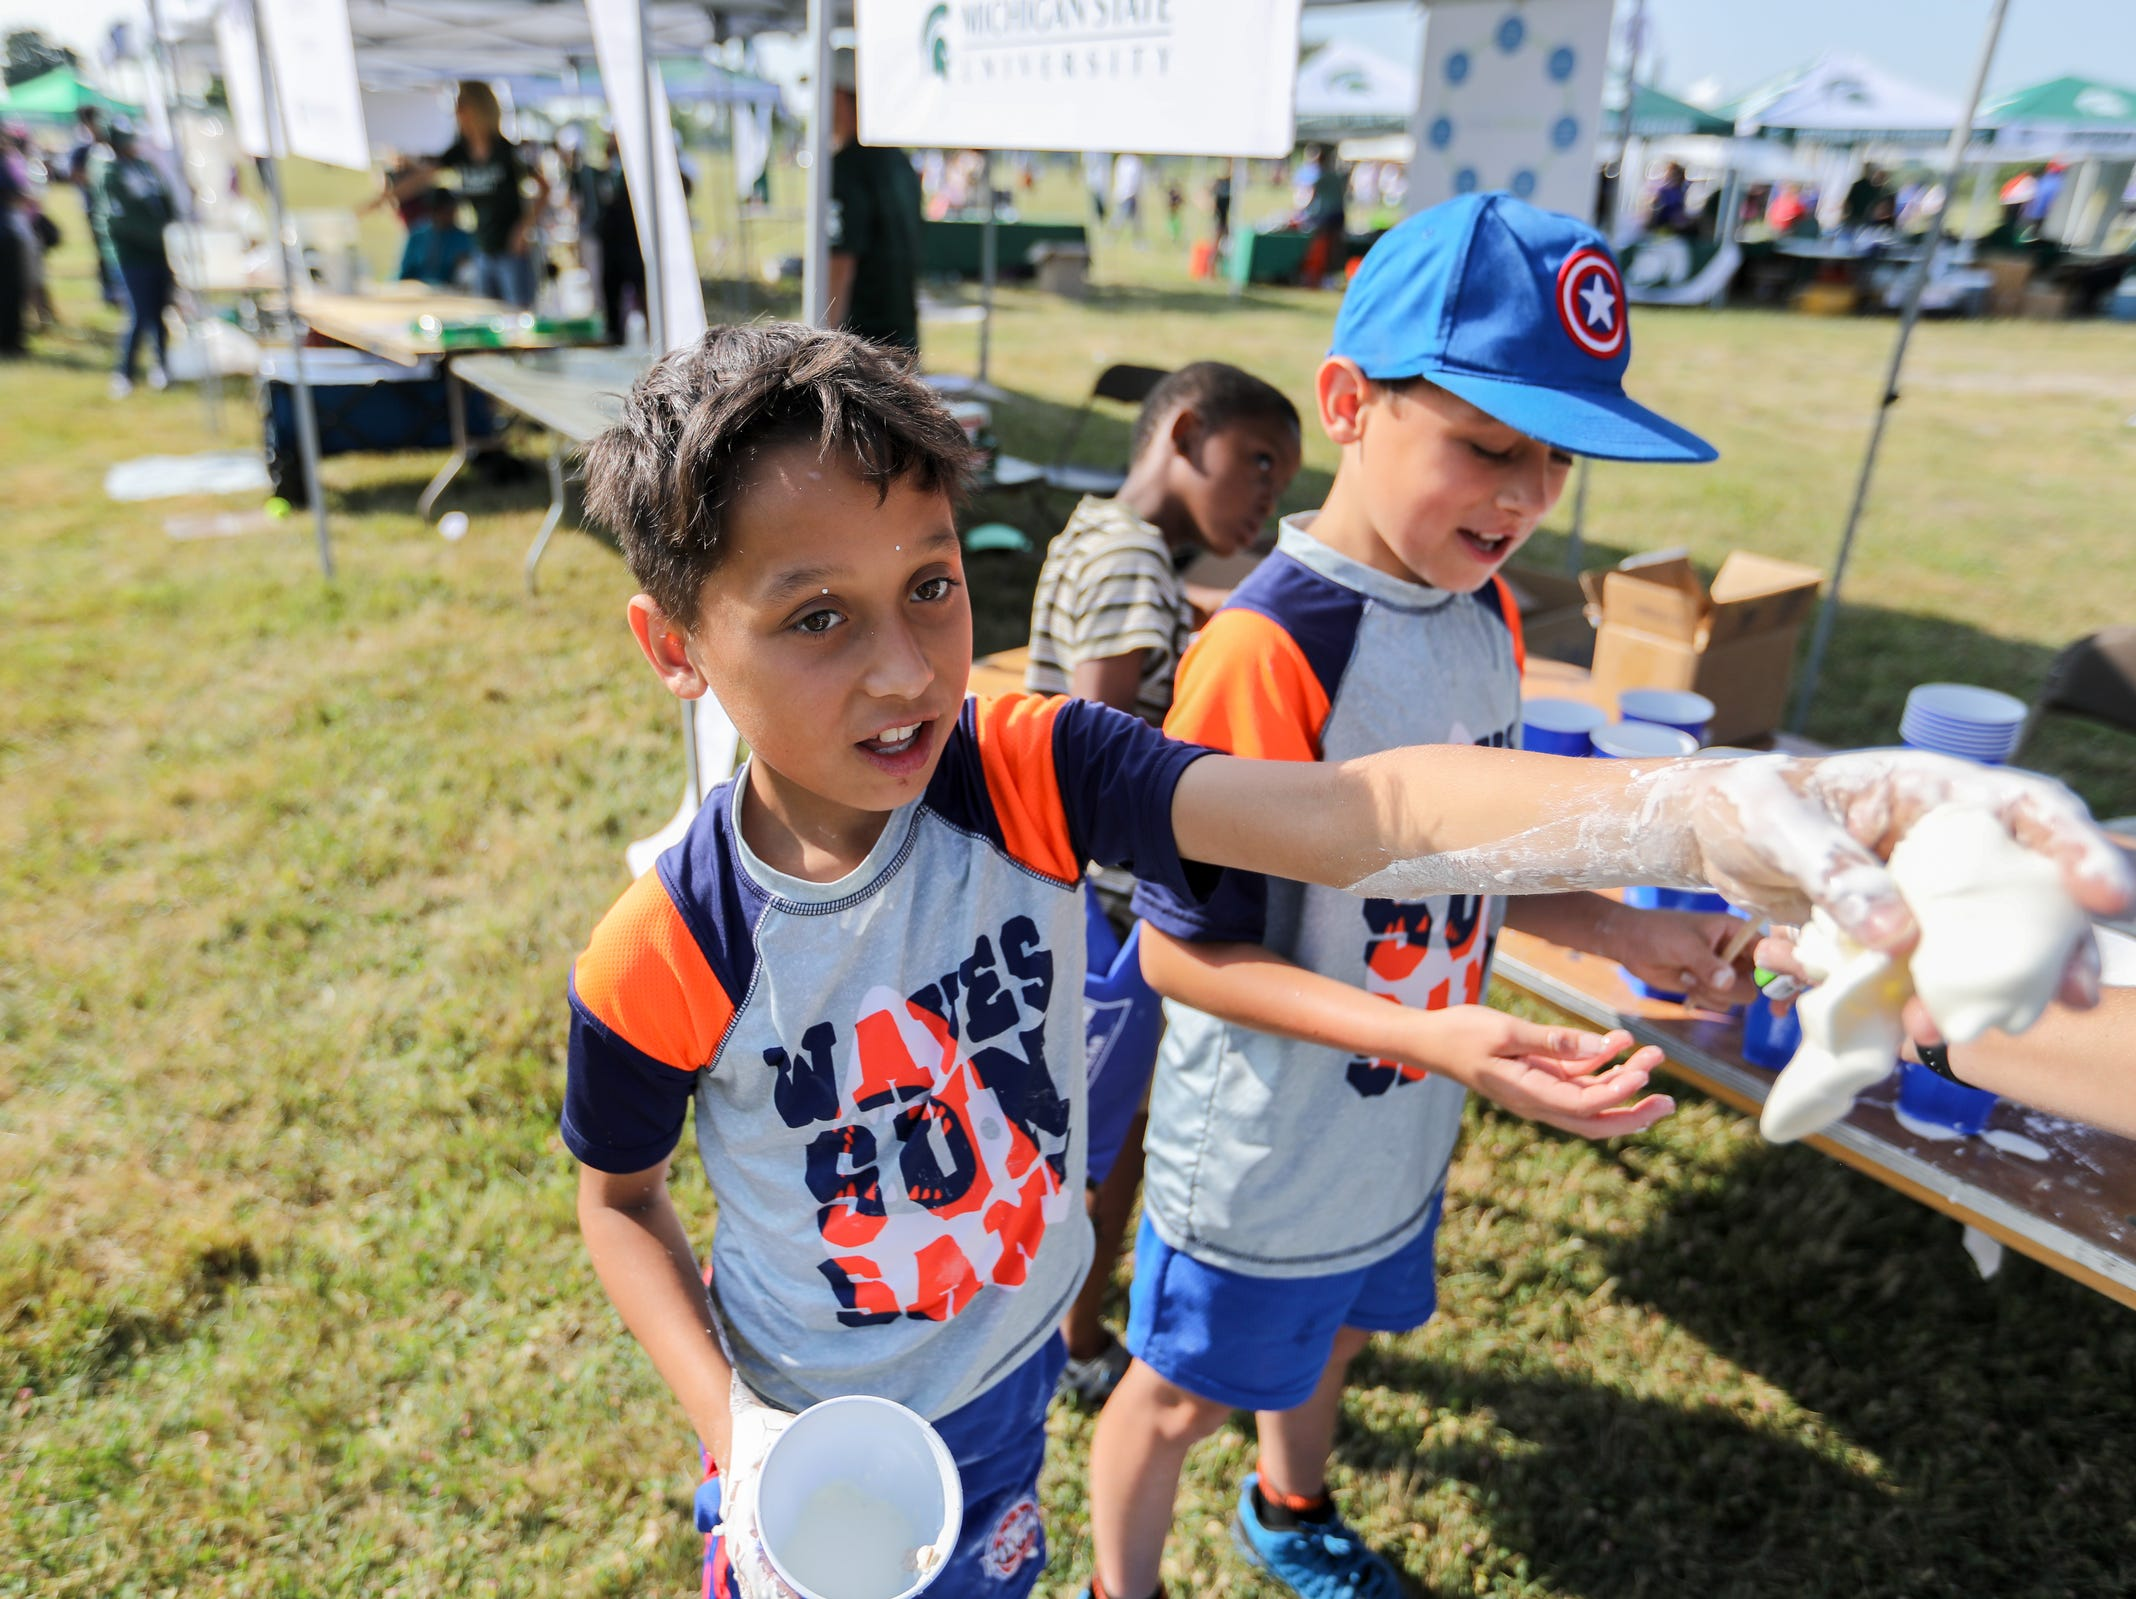 Cody and Dominic Coner, both 10, of Detroit play with Oobleck, a substance typically made of cornstarch and water, during Metro Detroit Youth Day at Belle Isle in Detroit on Wednesday, July 11, 2018.